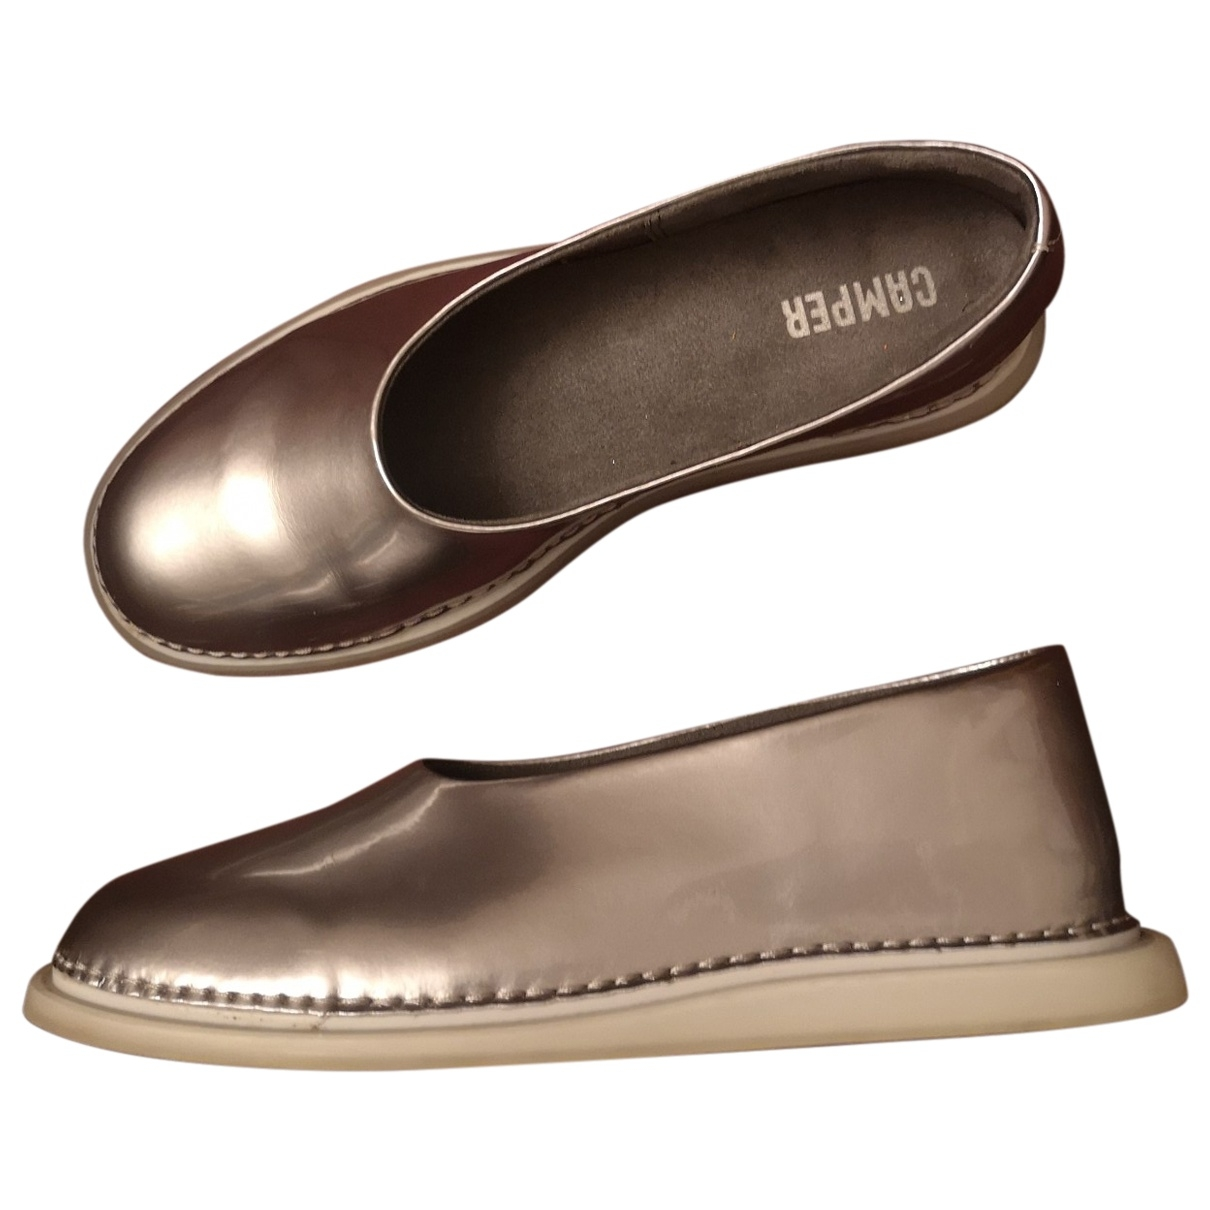 Camper \N Silver Patent leather Flats for Women 40 EU